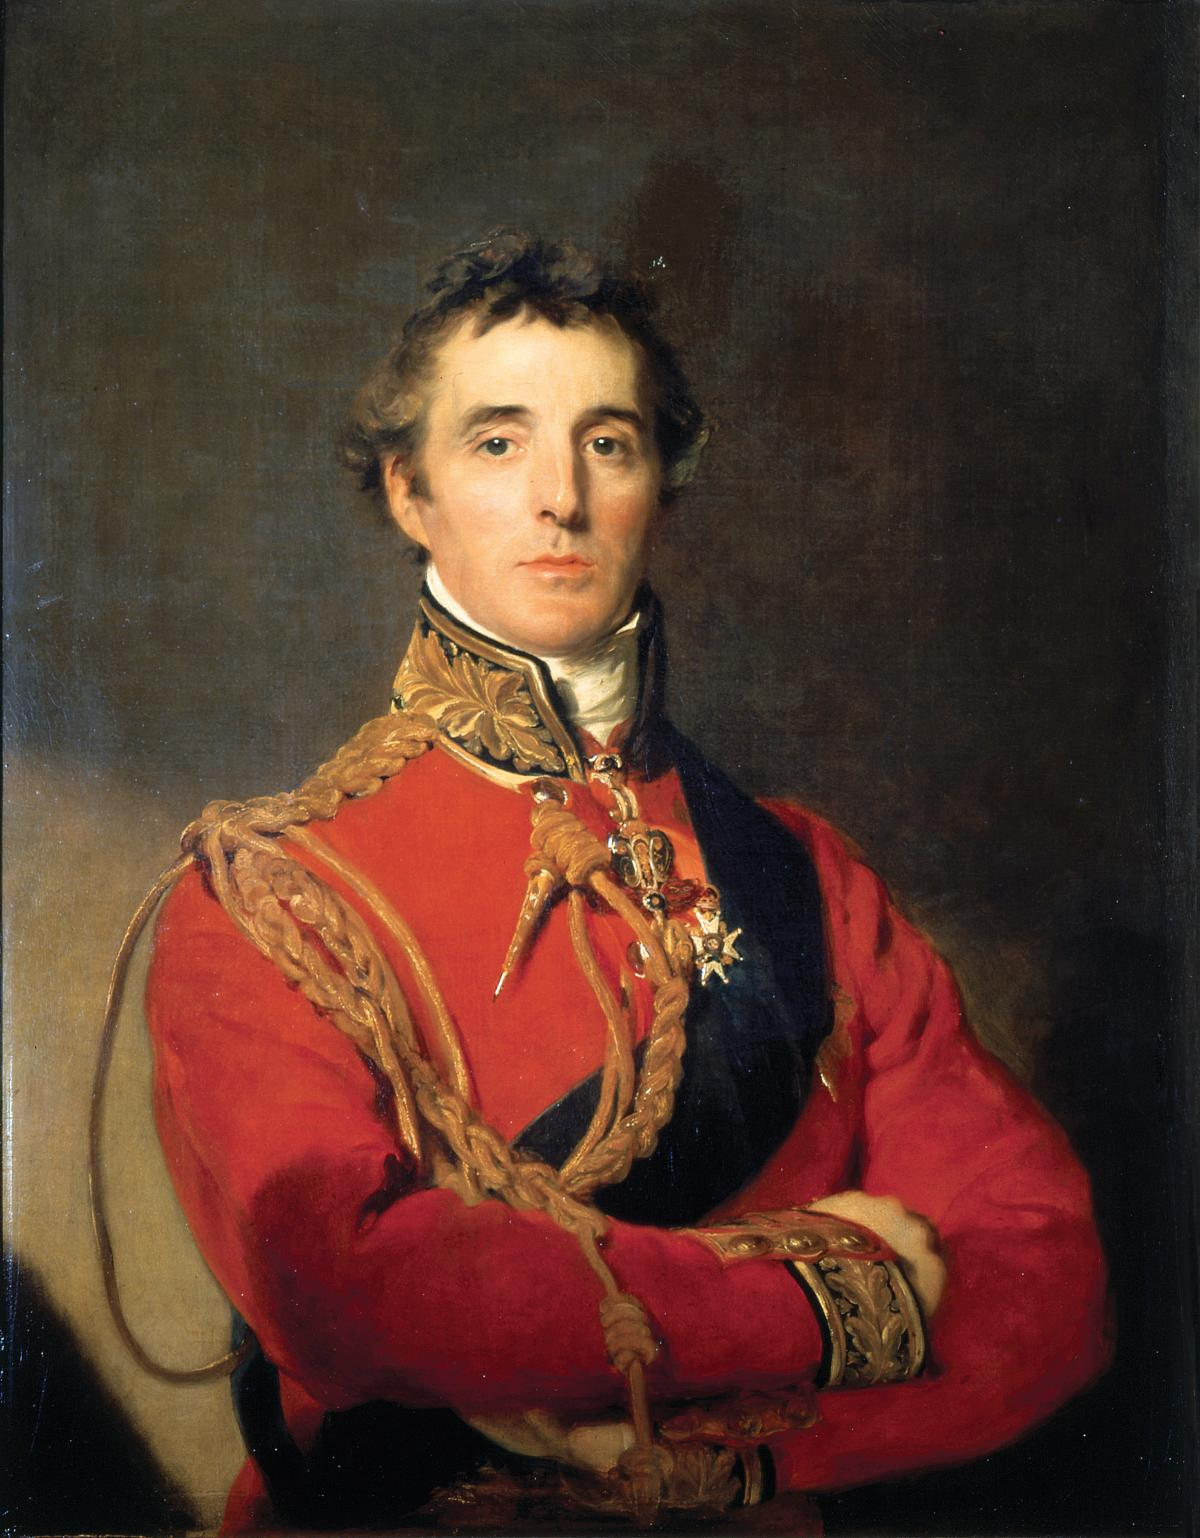 The General in a red tunic decorated with gold braid, with arms crossed across his chest